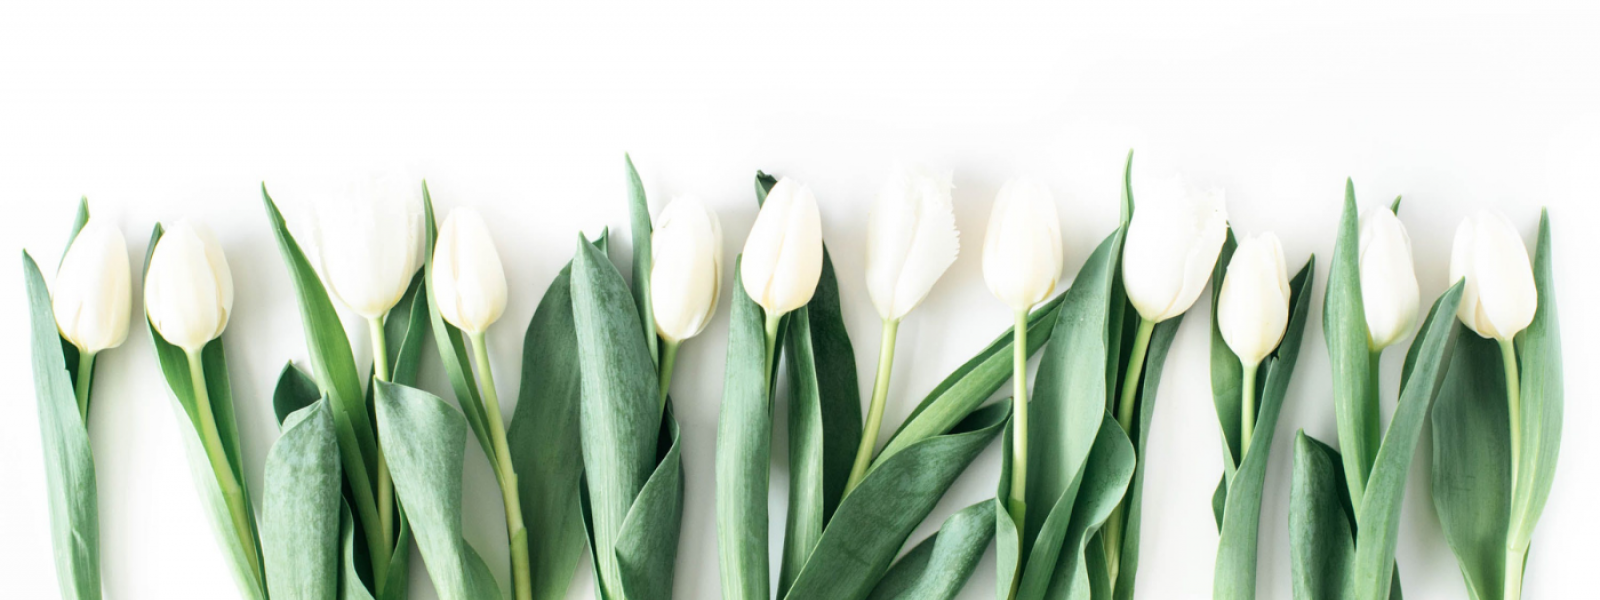 white tulips lined up in a row with bright green stems and leaves